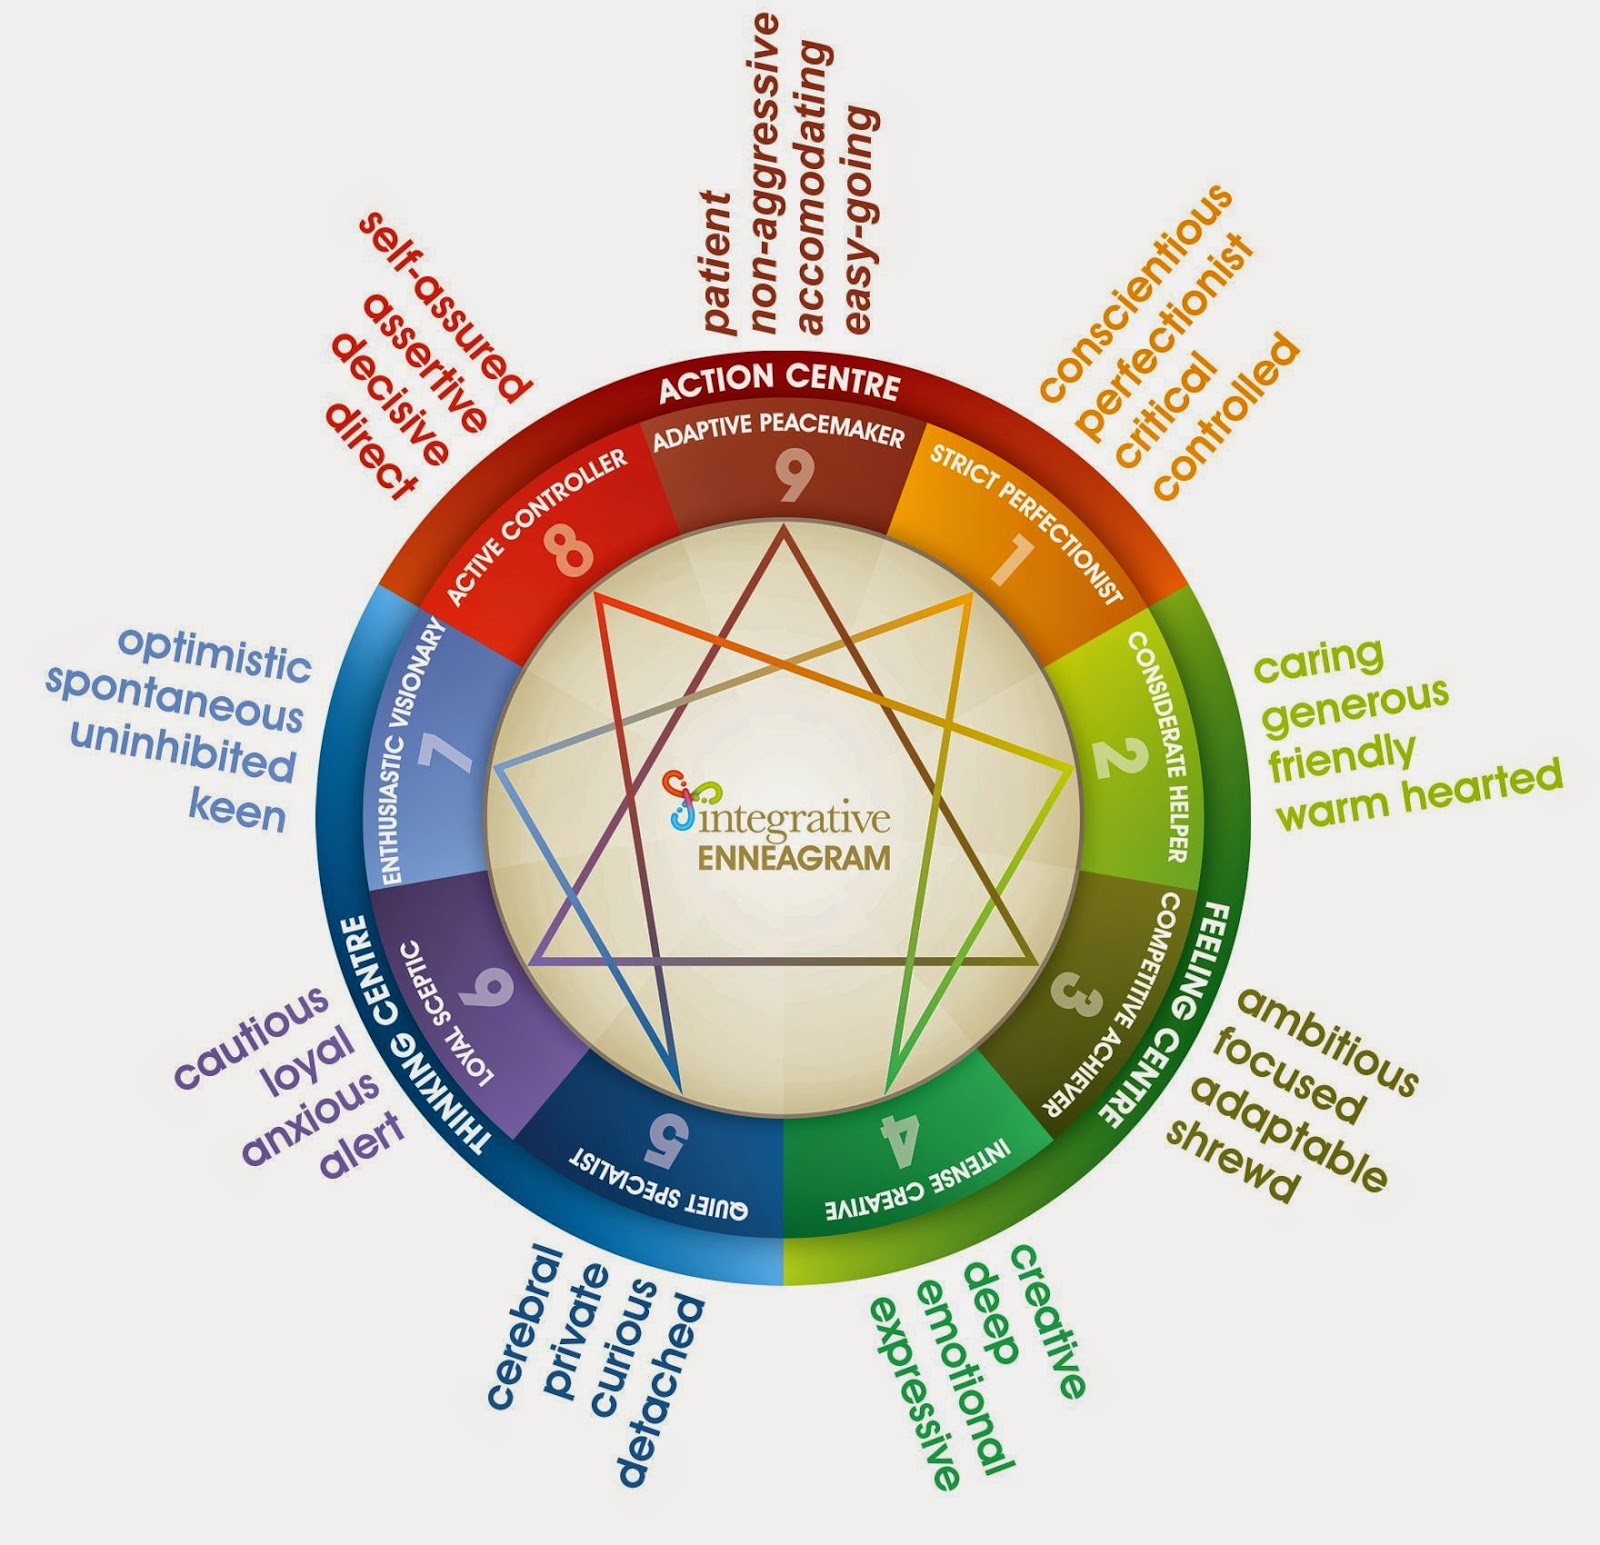 enneagram type 1 and 4 relationship